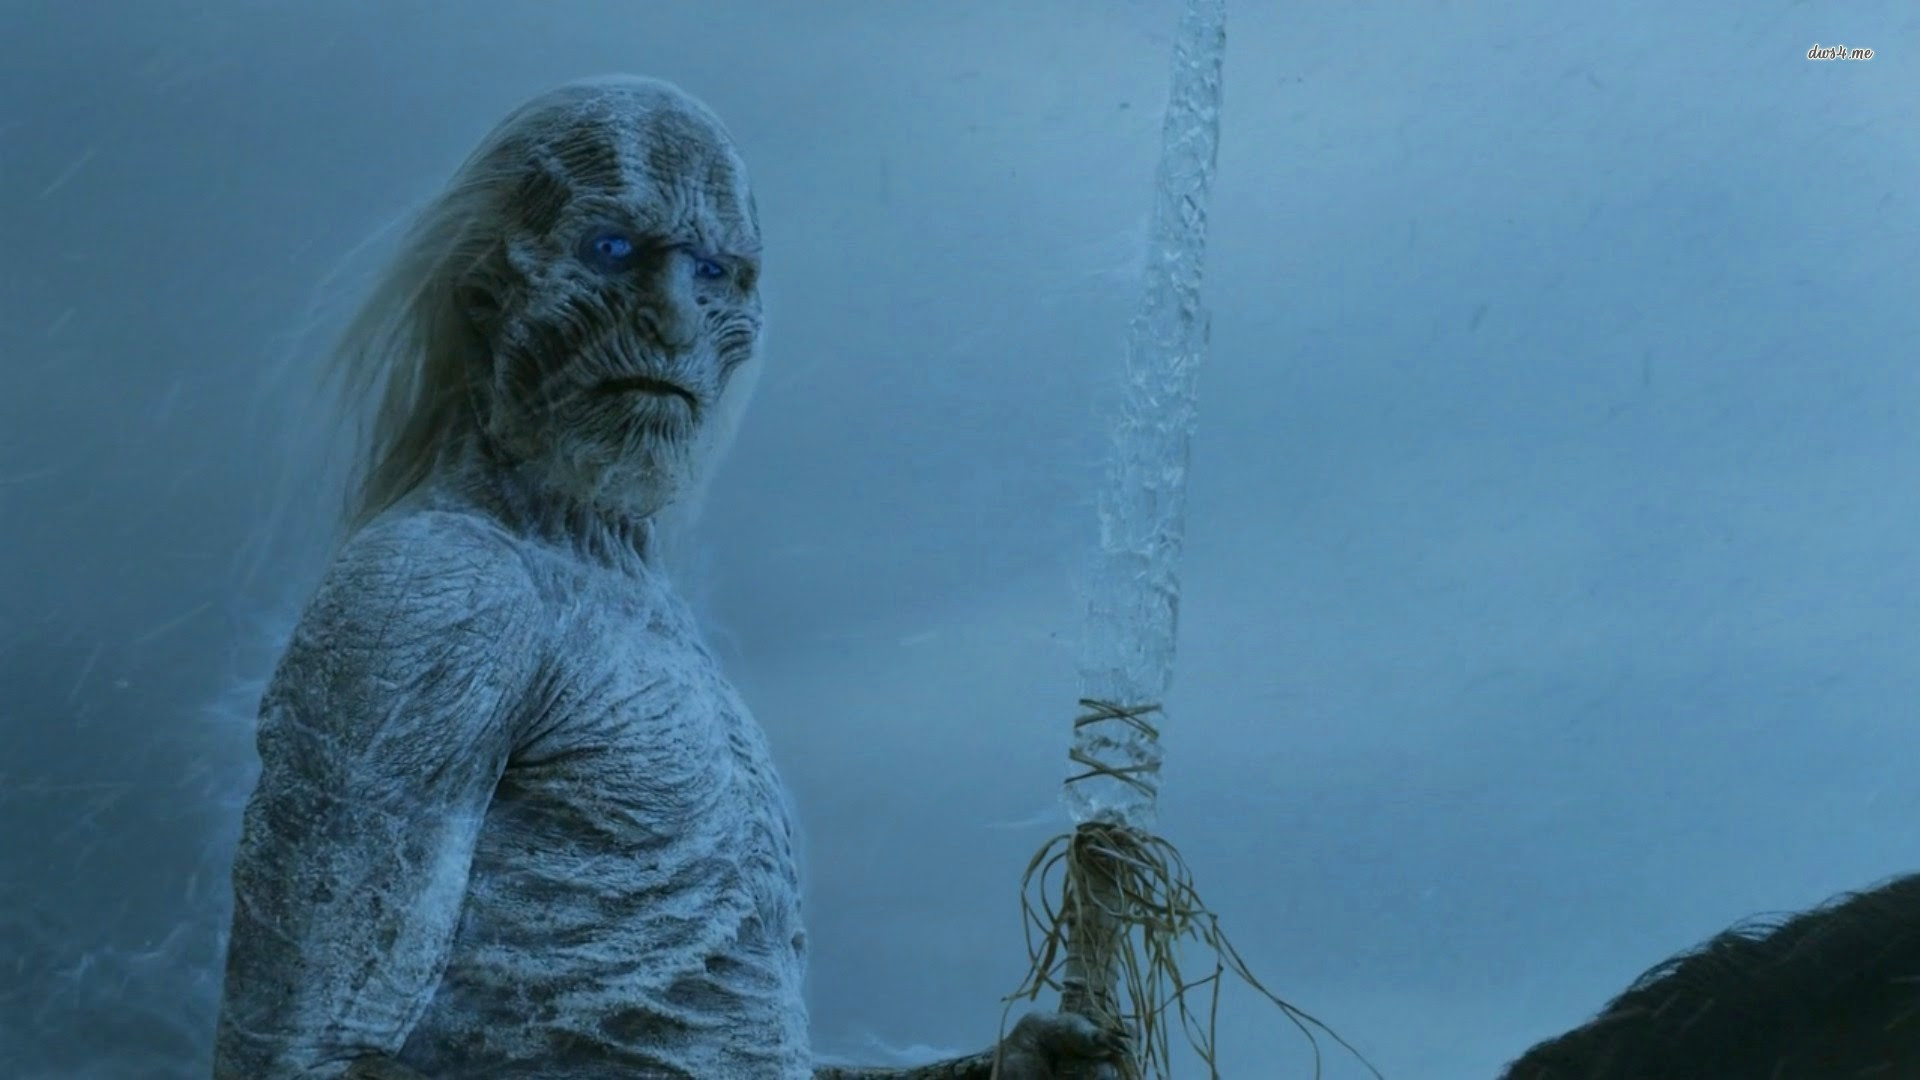 The White Walkers Game Of Thrones Wallpaper 38780109 Fanpop